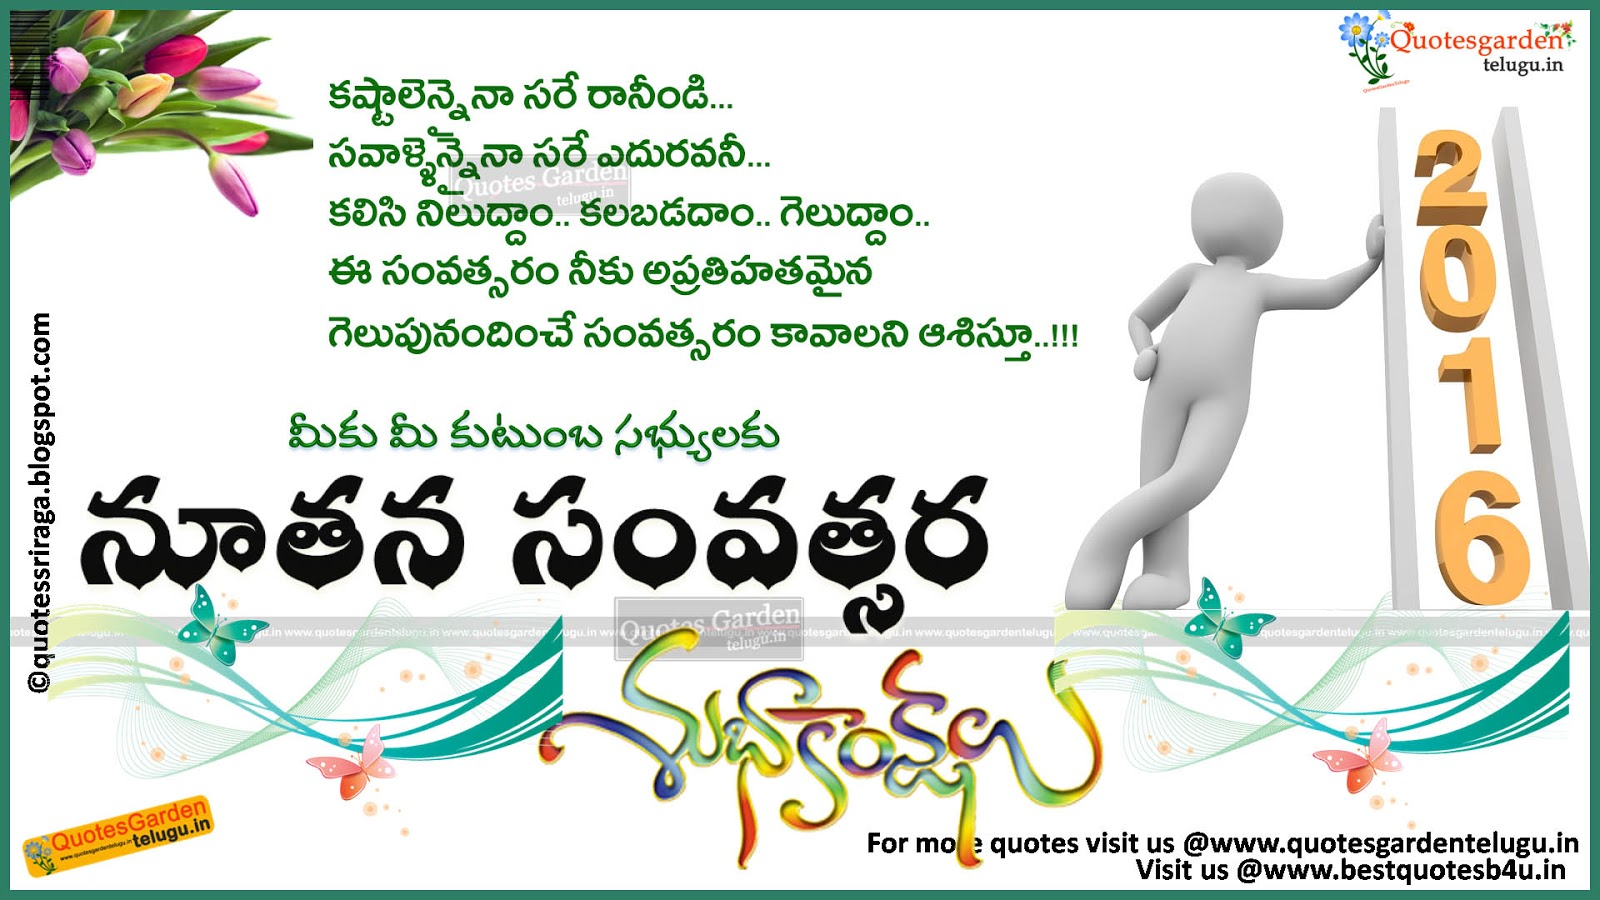 happy new year Telugu latest wallpapers greetings kavitalu ...